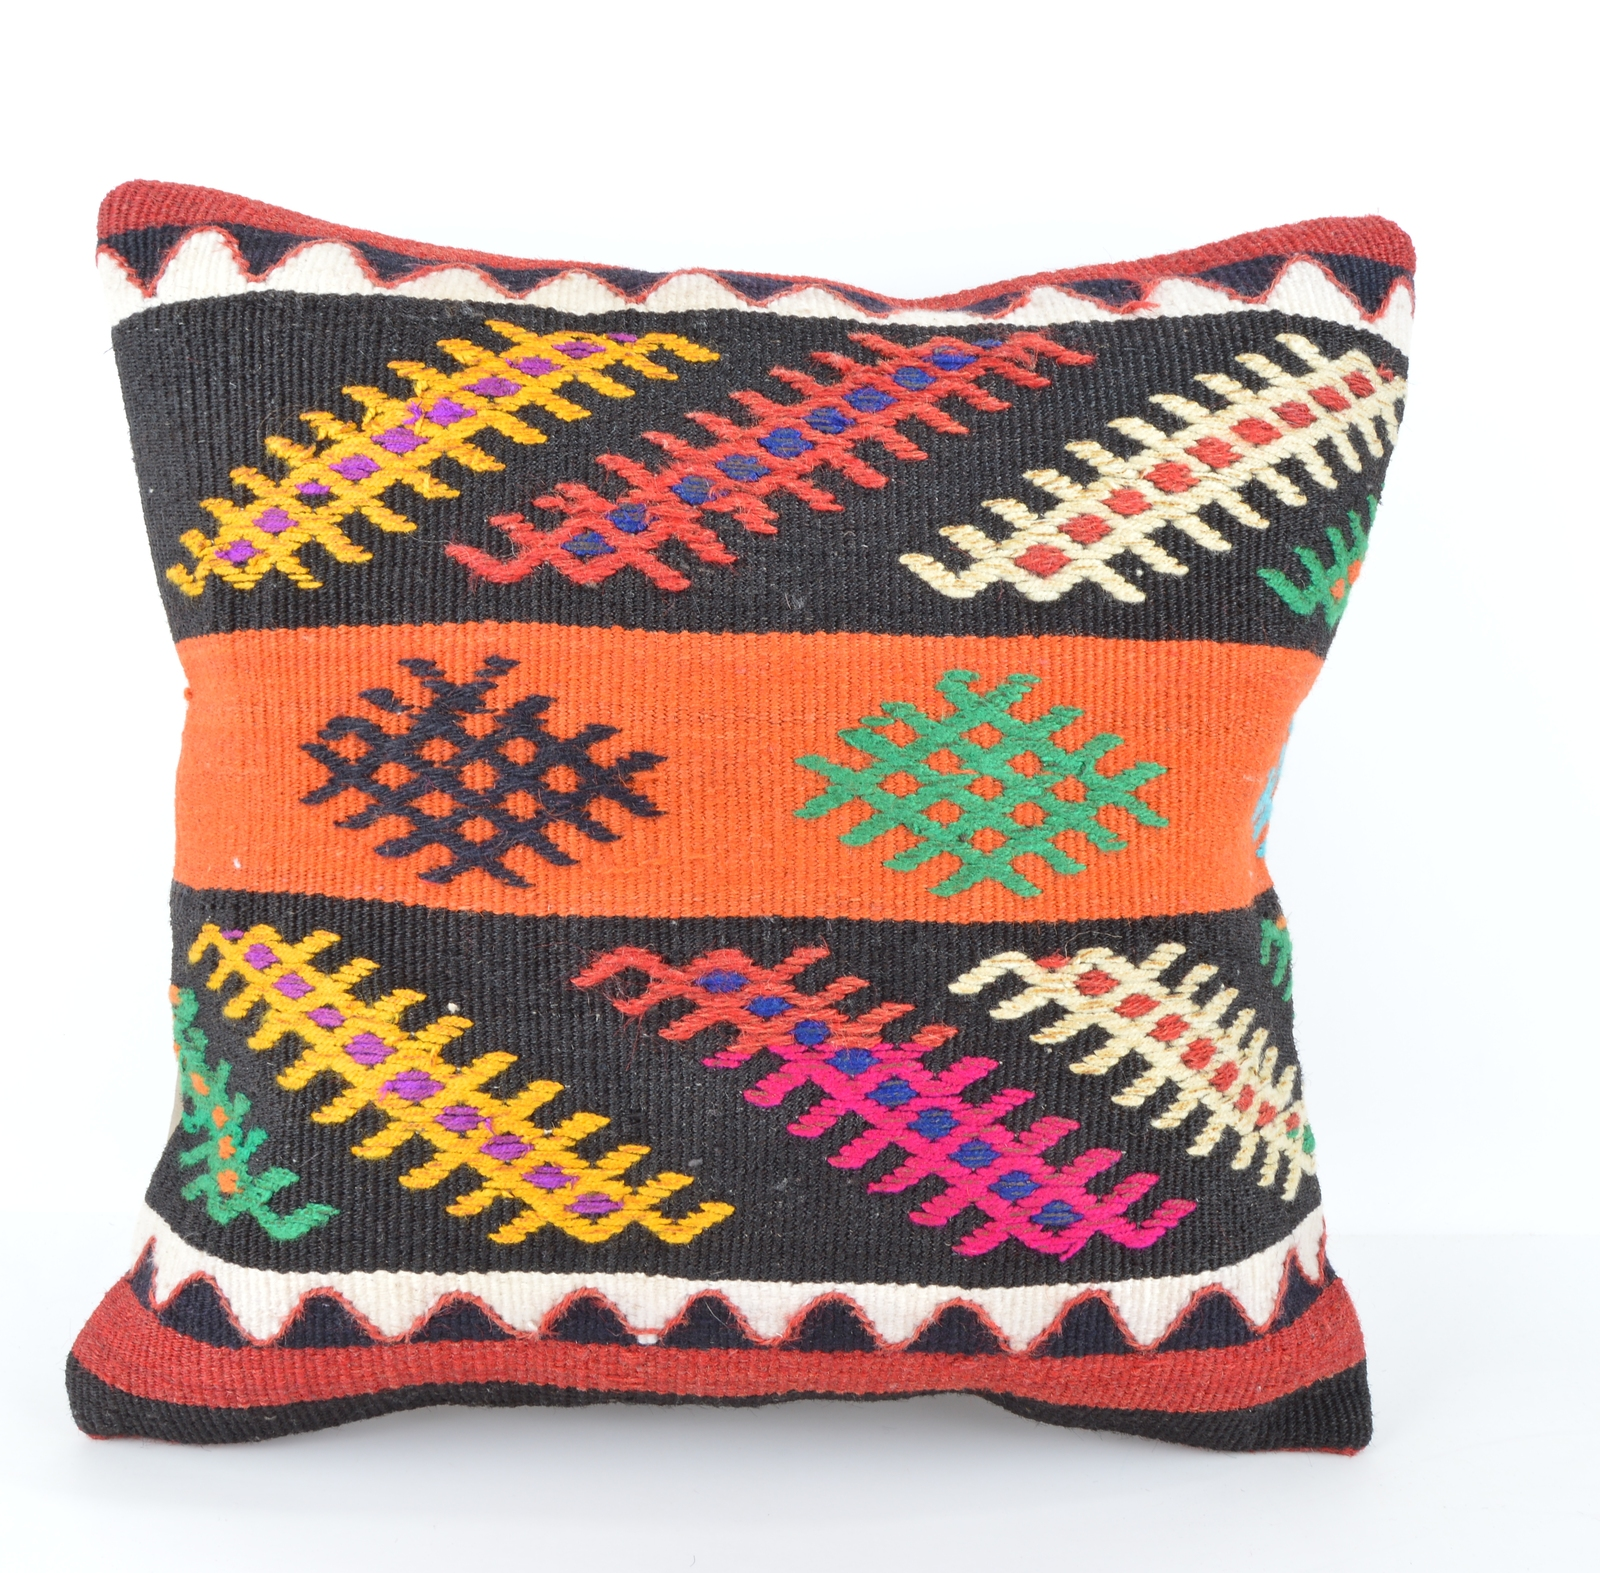 kilim,throw pillow kilim,bohemian decor,throw pillow,decorative throw pillows16 - Pillows